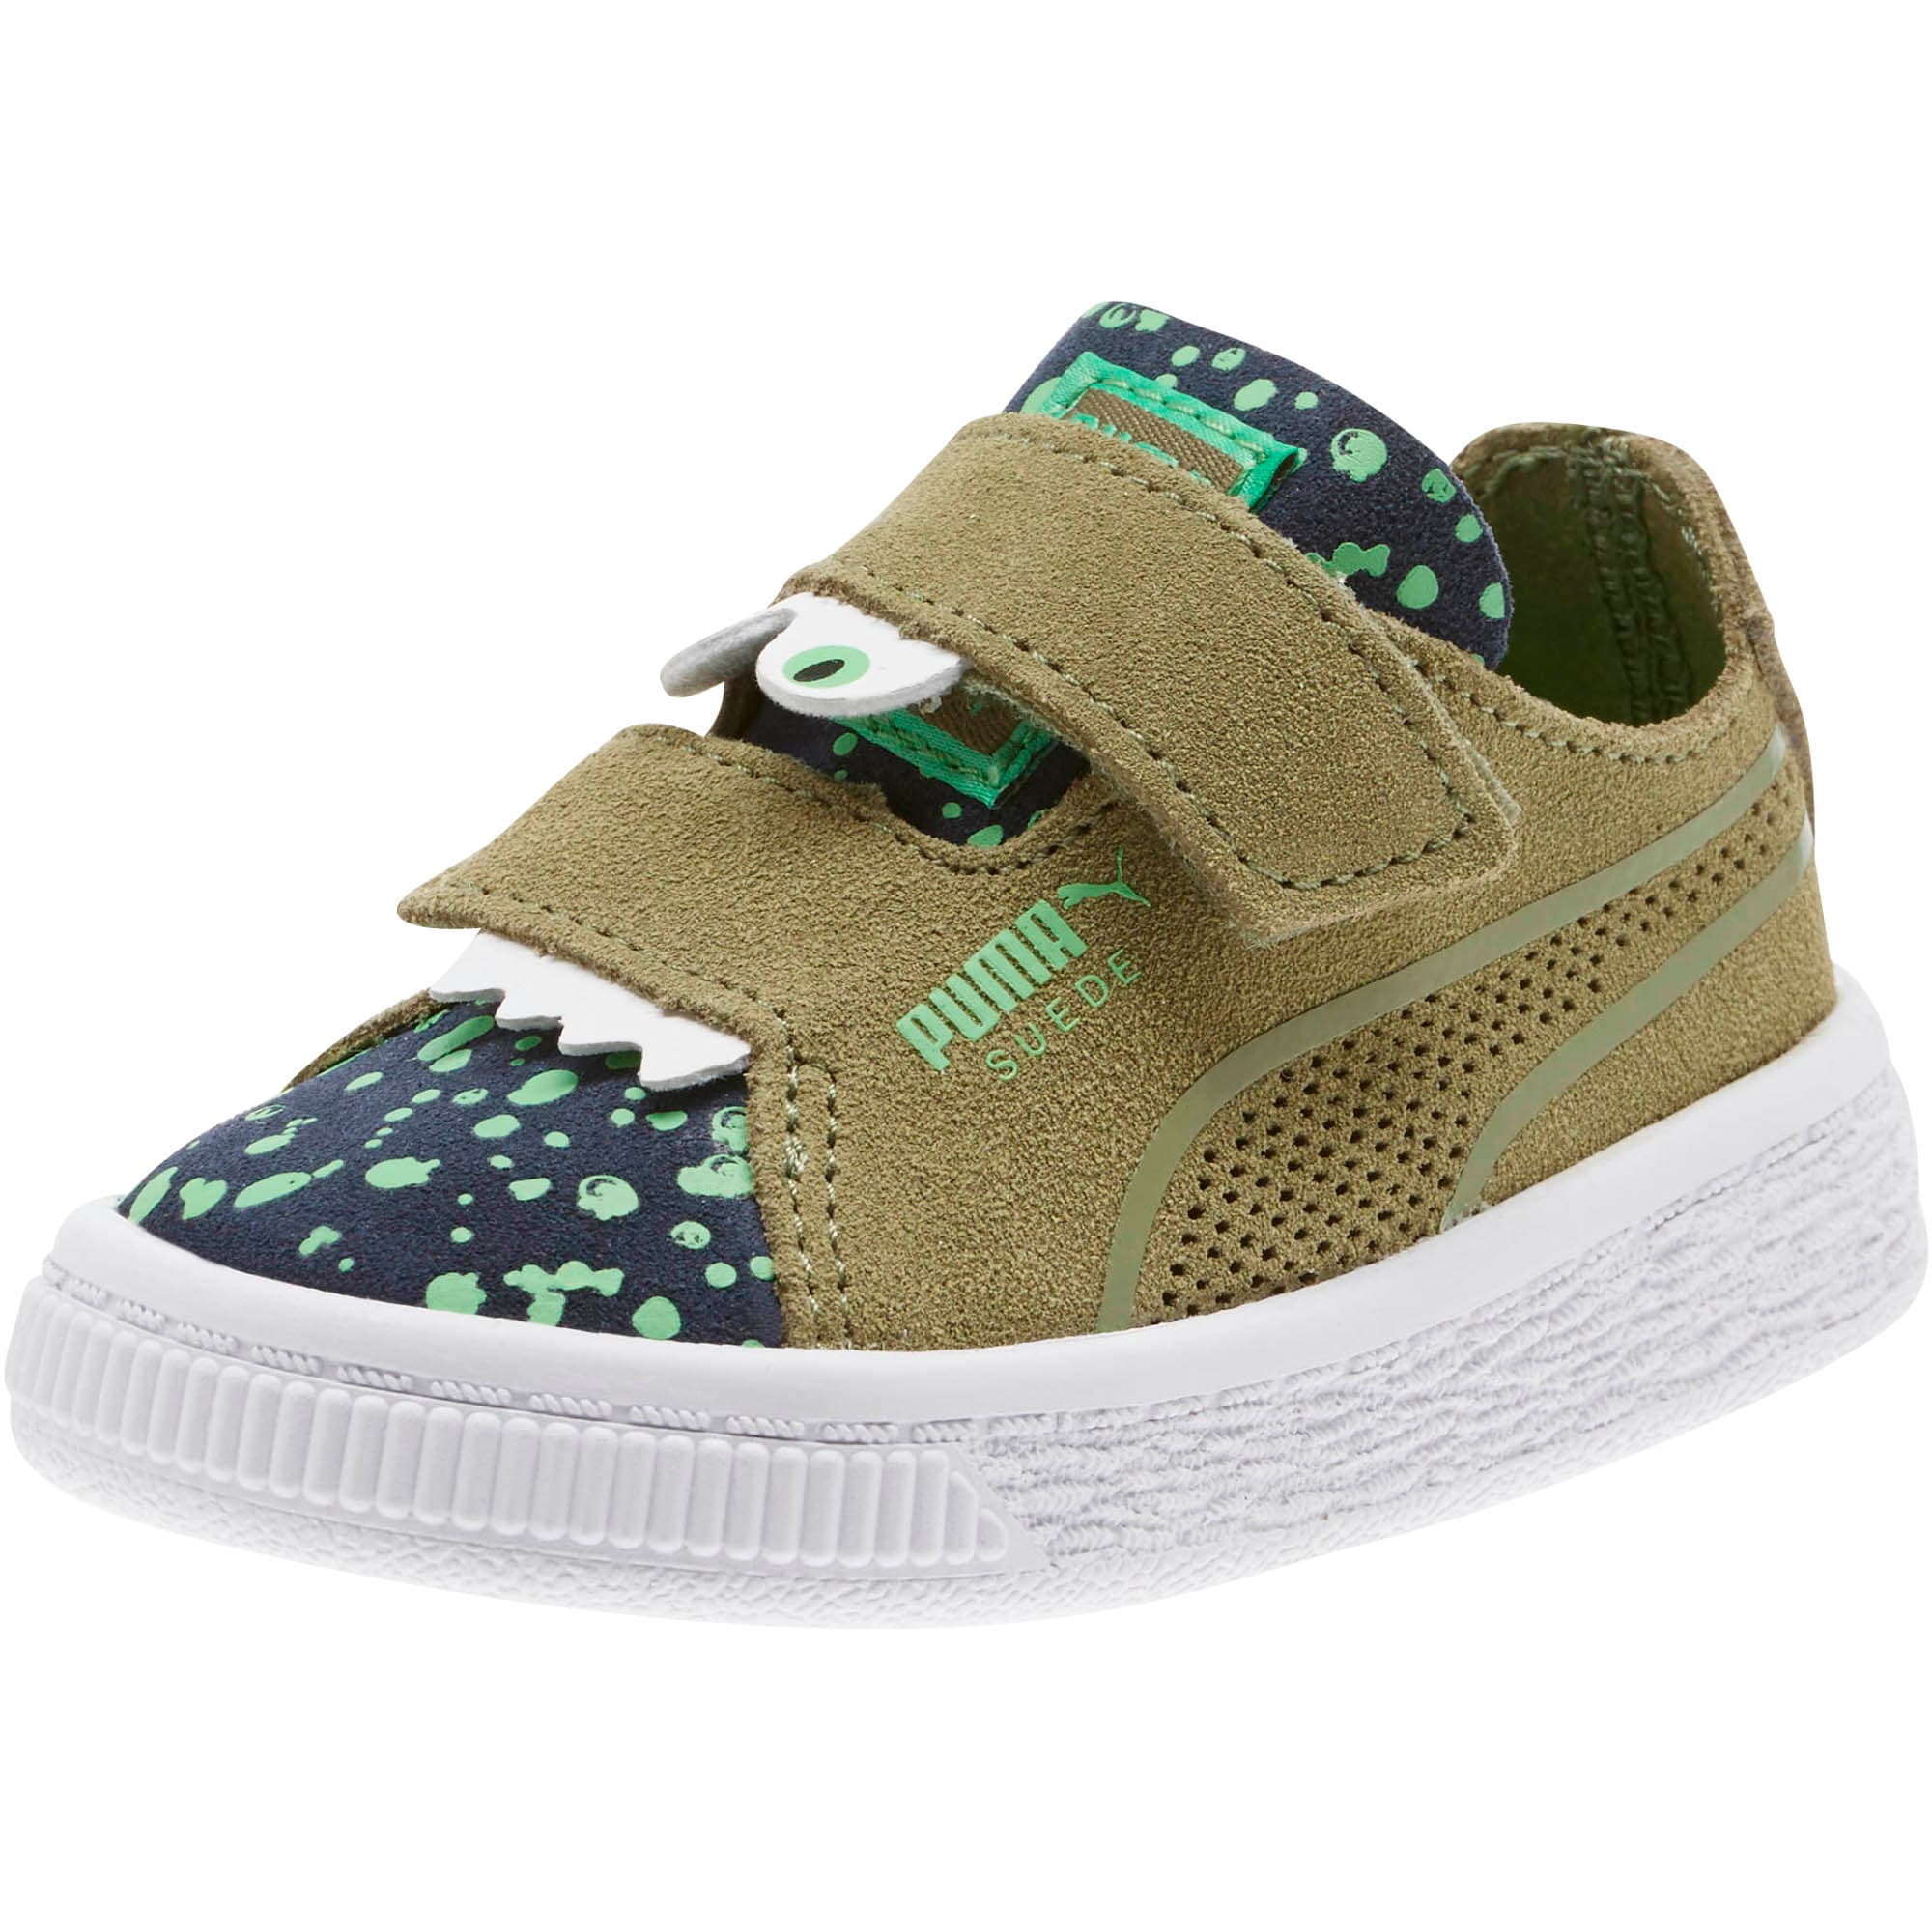 Thumbnail 1 of Suede Deconstruct Monster Toddler Shoes, Olivine-Peacoat-Irish Green, medium